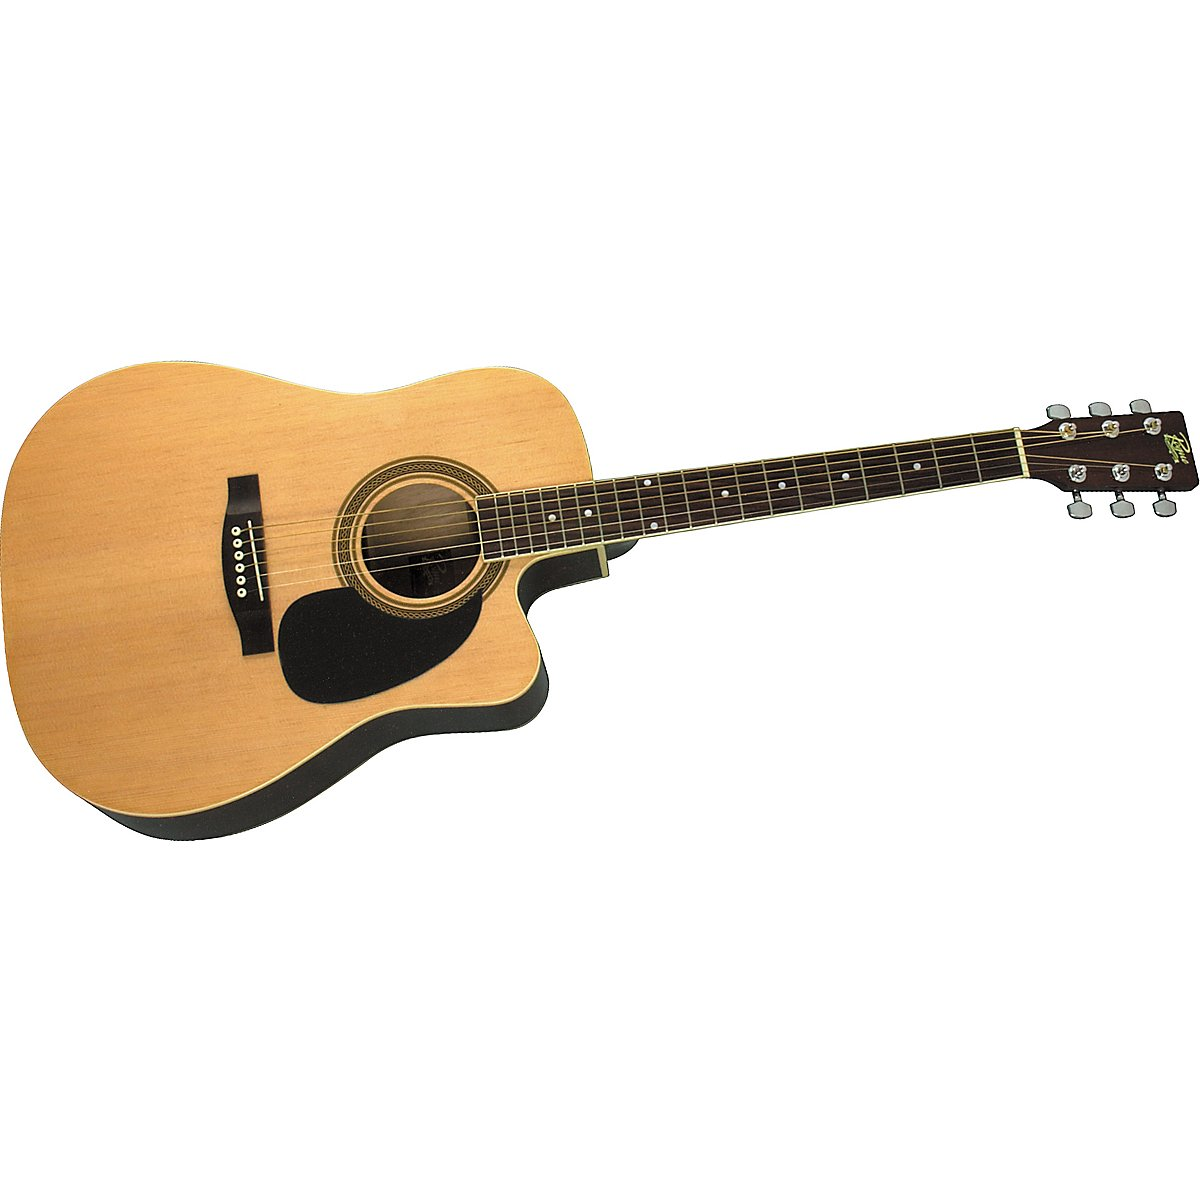 Guitar in good condition